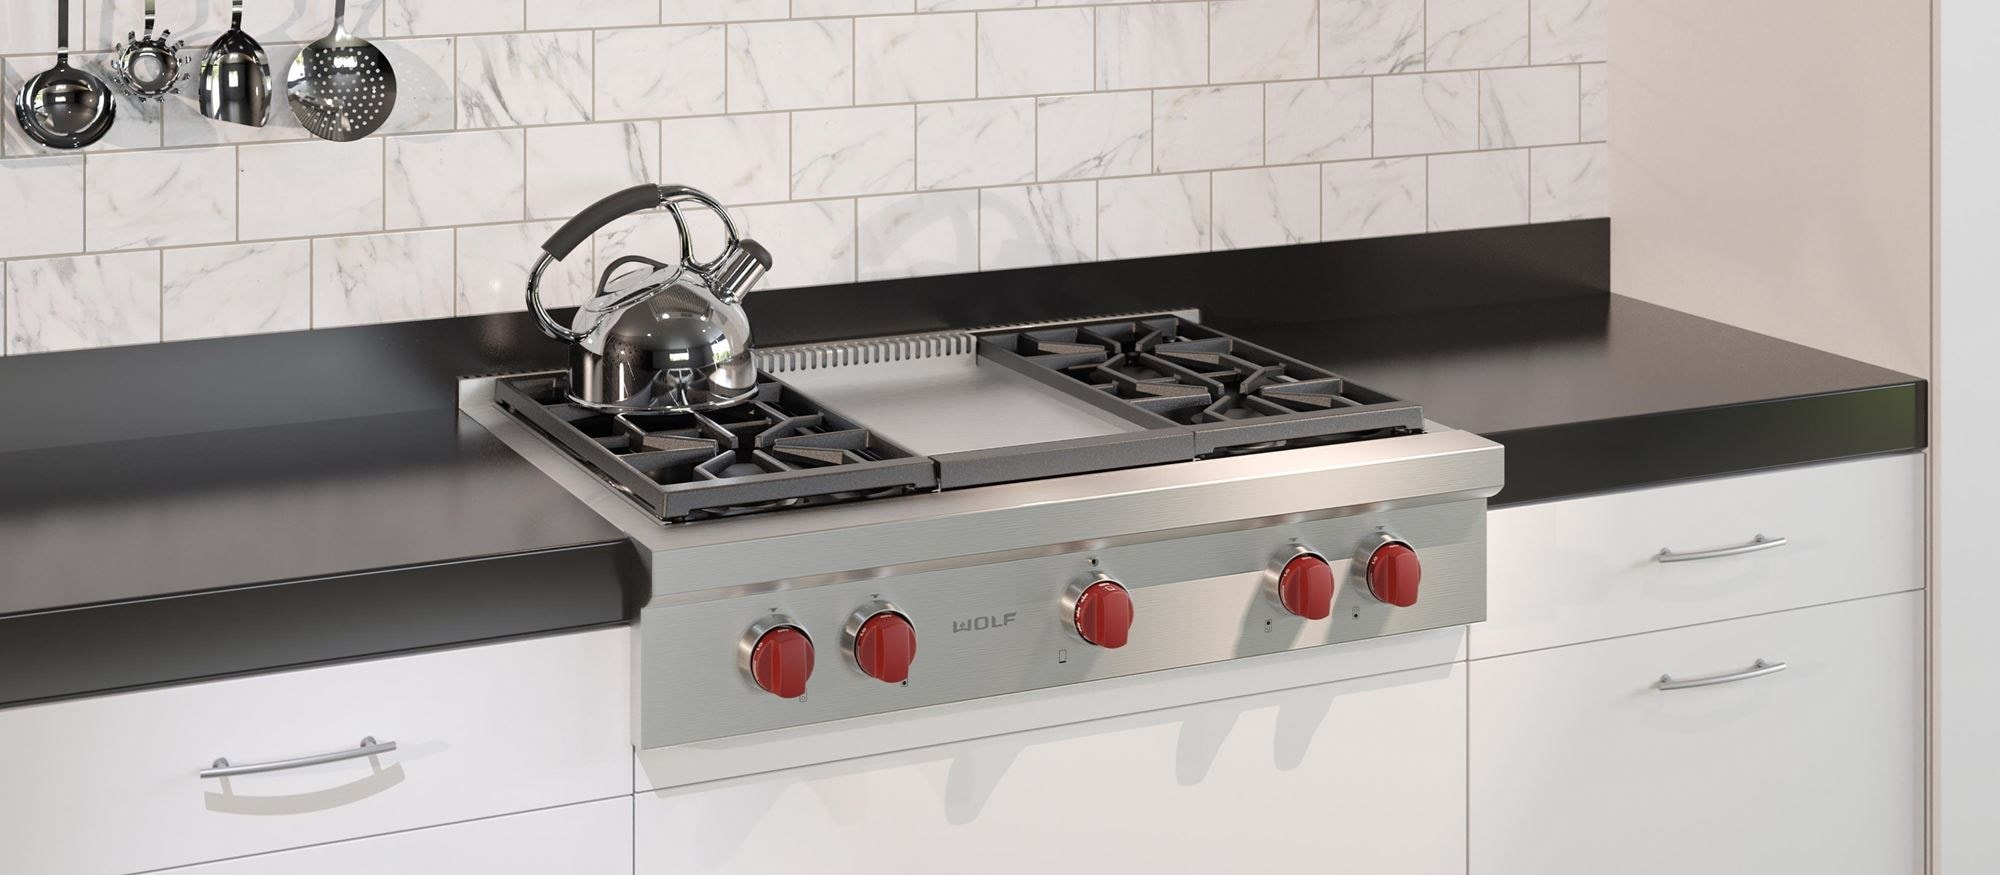 Prime 36 Sealed Burner Rangetop 4 Burners And Infrared Griddle Home Interior And Landscaping Ponolsignezvosmurscom